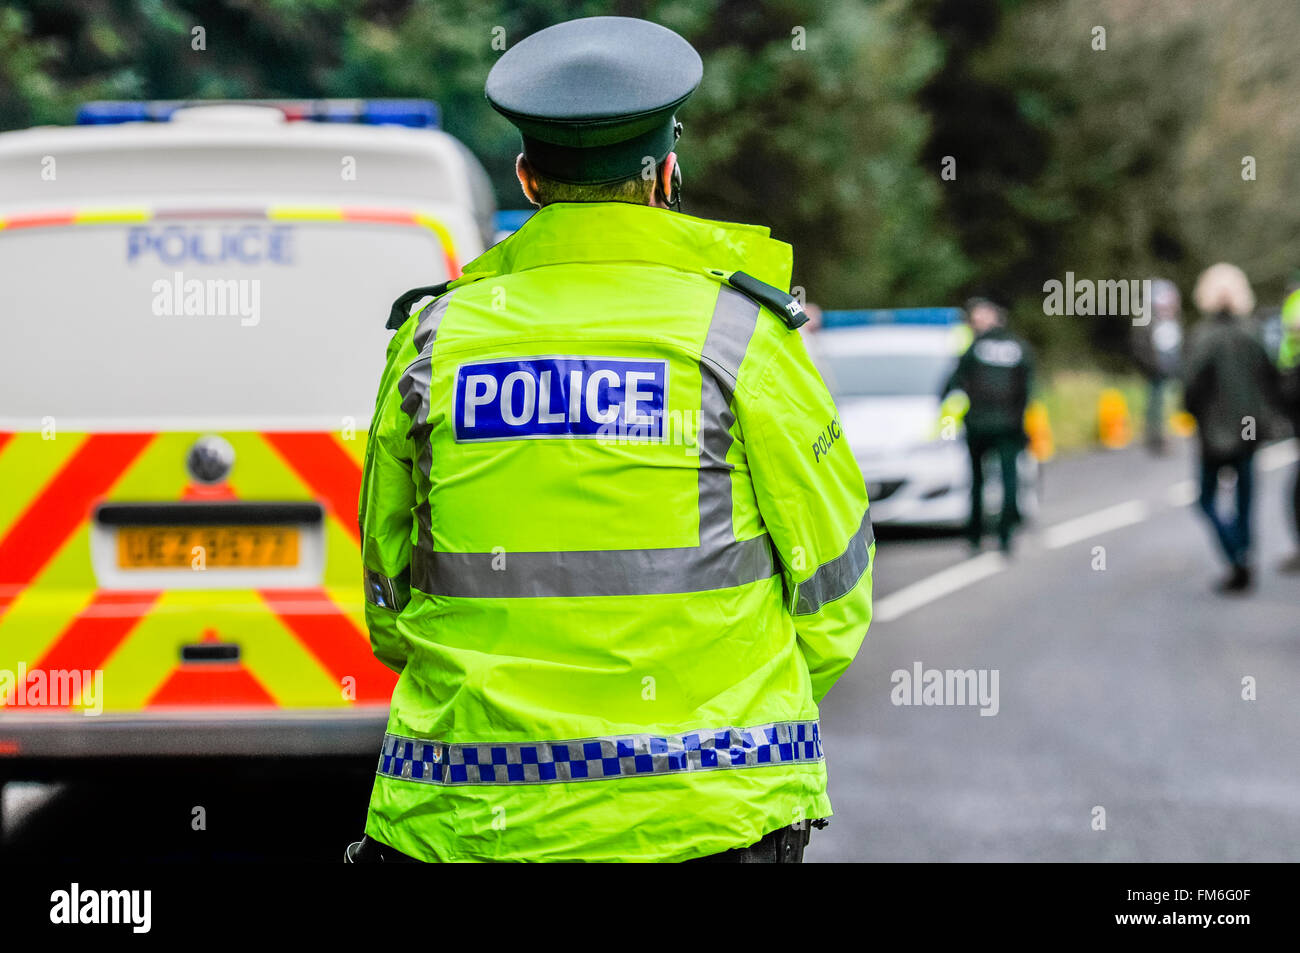 Police wearing high-visibility jackets on duty at a road traffic incident - Stock Image